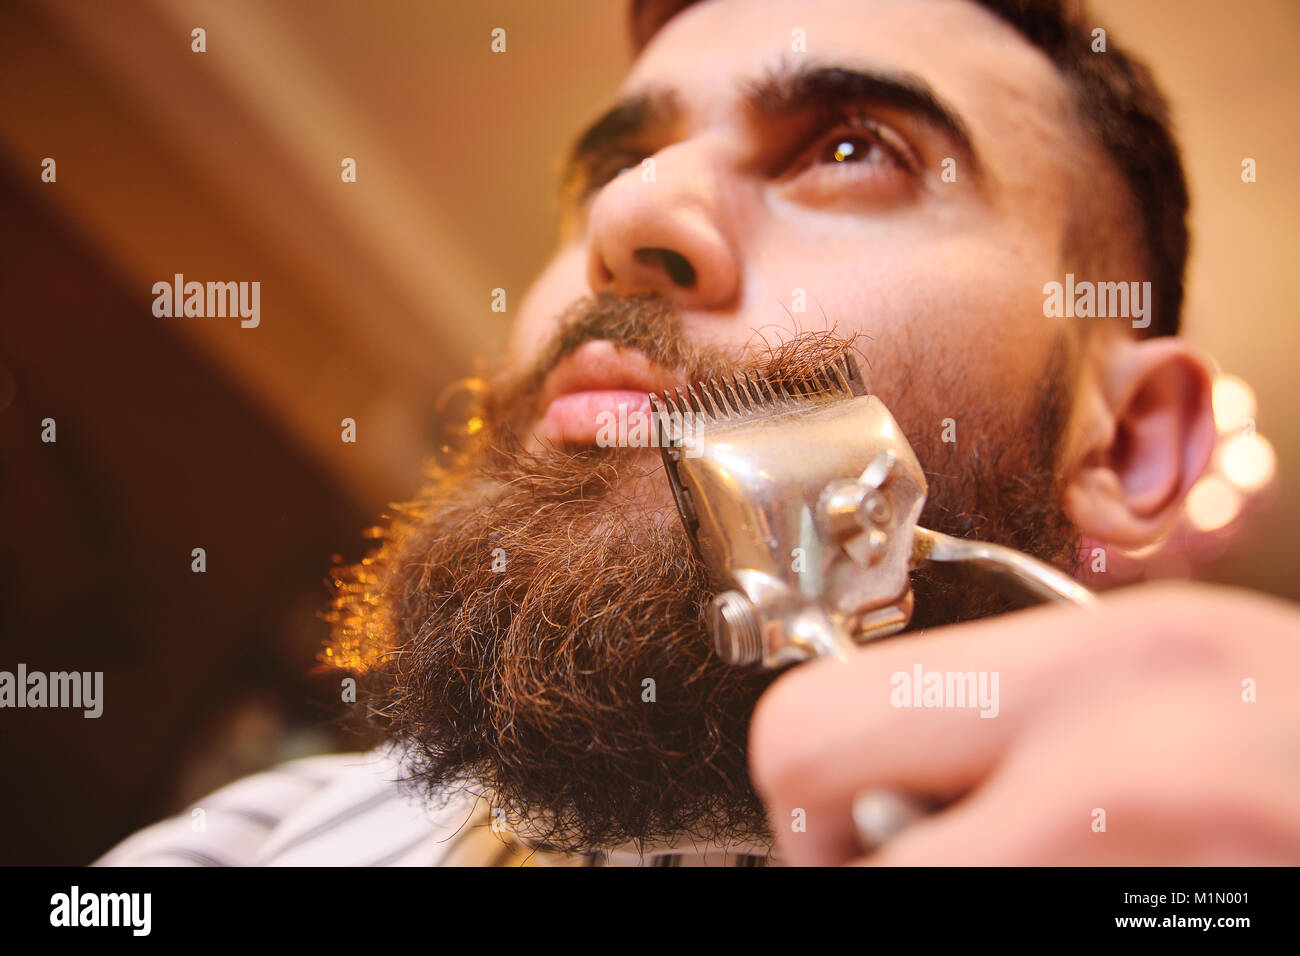 a young manly man with a beard in barbershop - Stock Image